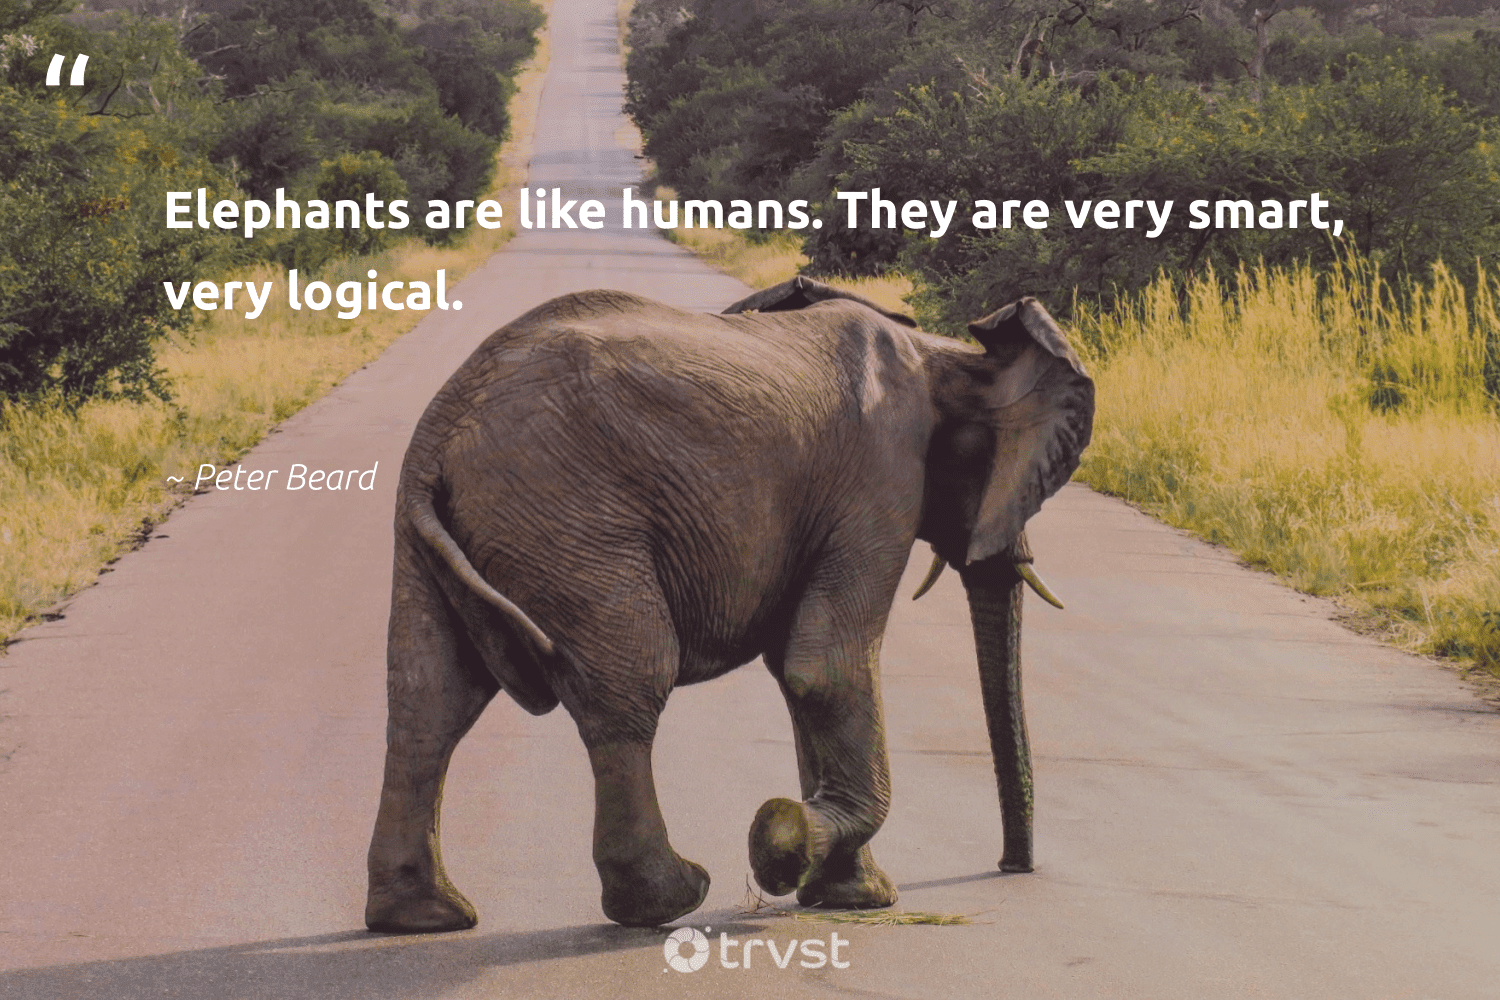 """""""Elephants are like humans. They are very smart, very logical.""""  - Peter Beard #trvst #quotes #elephants #conservation #planetearthfirst #wildgeography #socialchange #naturelovers #thinkgreen #elephantlove #gogreen #mammals"""